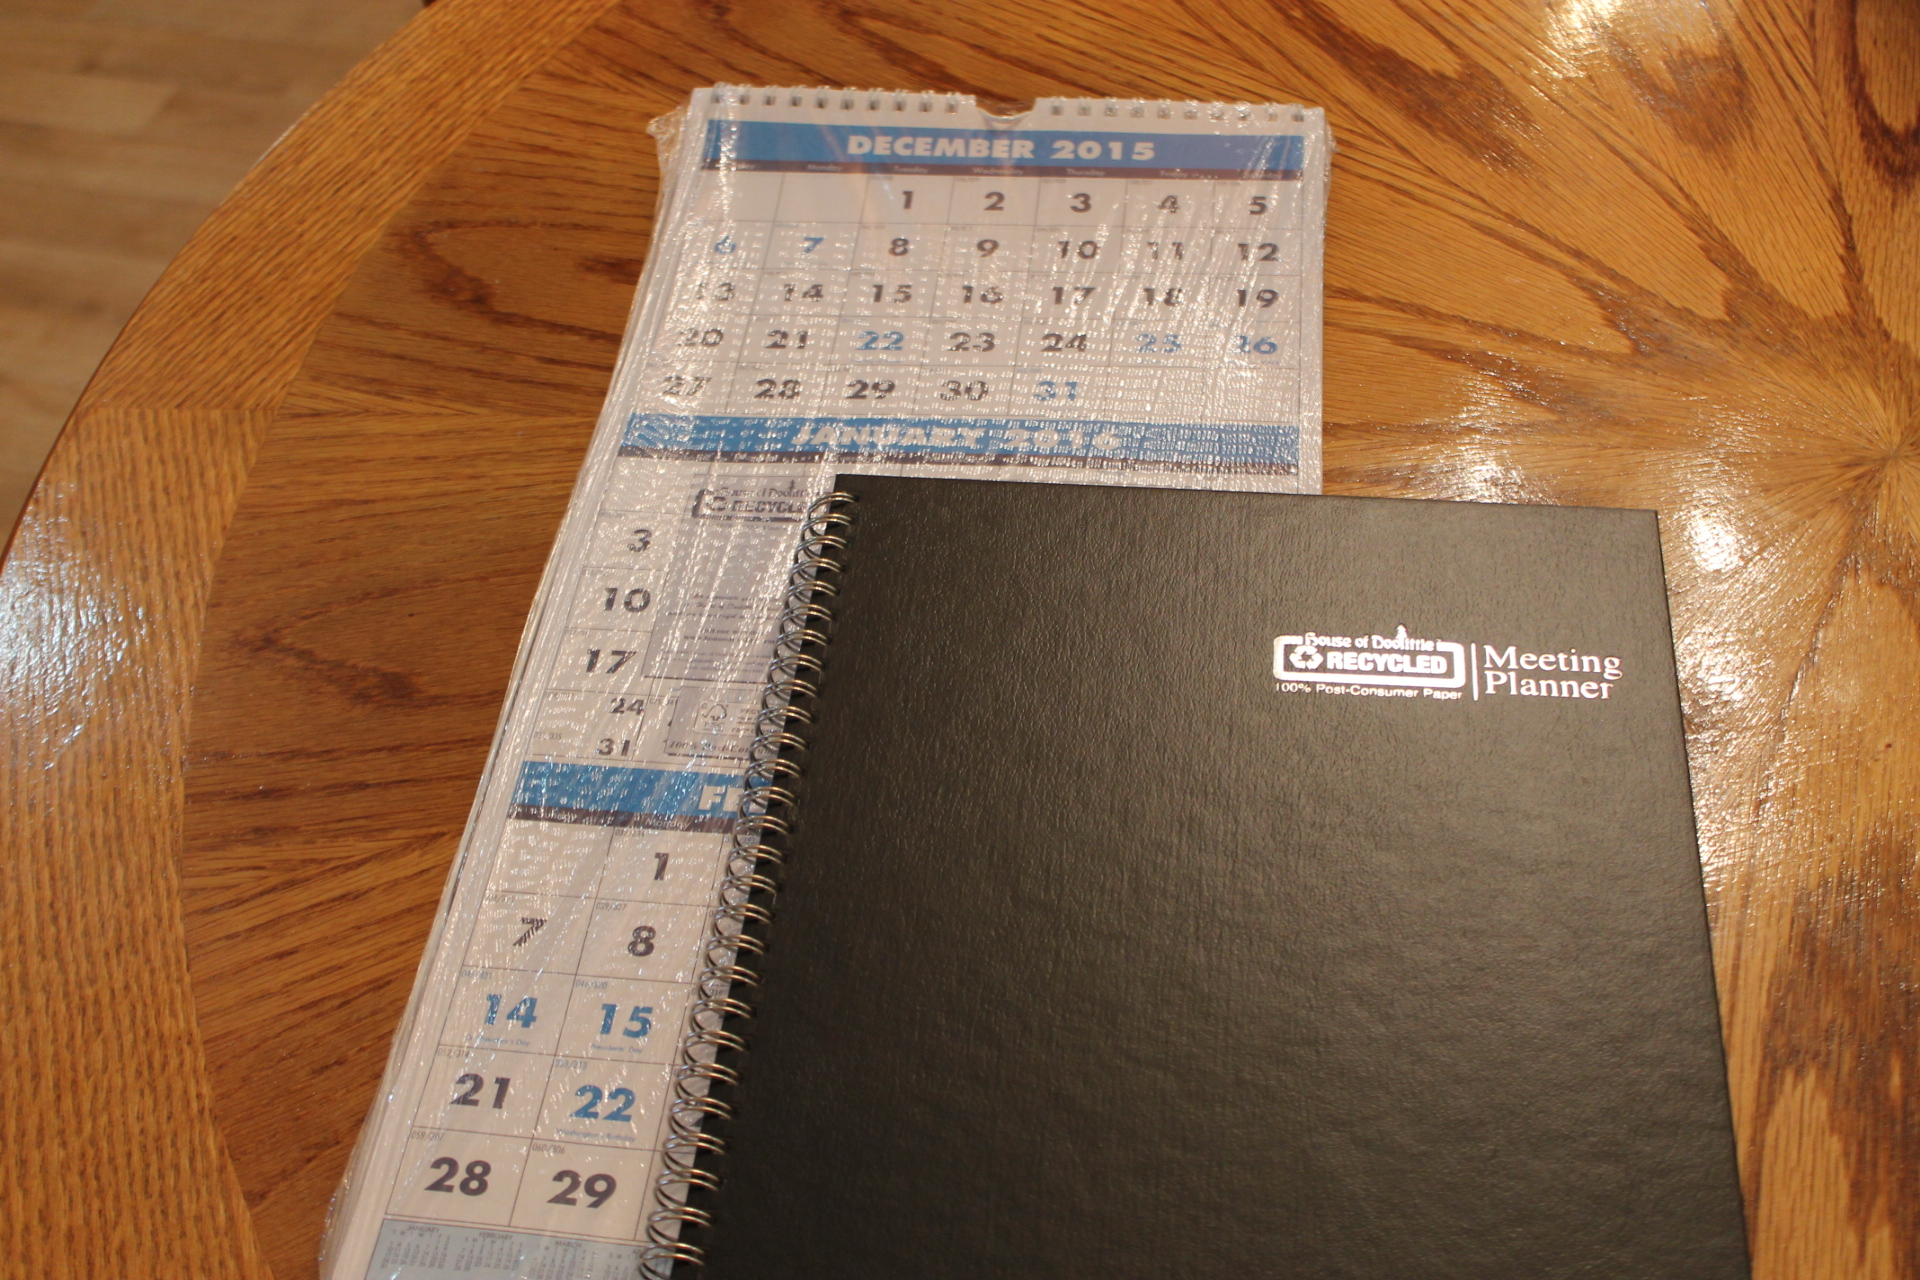 Organizing my home office with House of Doolittle planner and calendar! @Shoplet #ShopletReviews